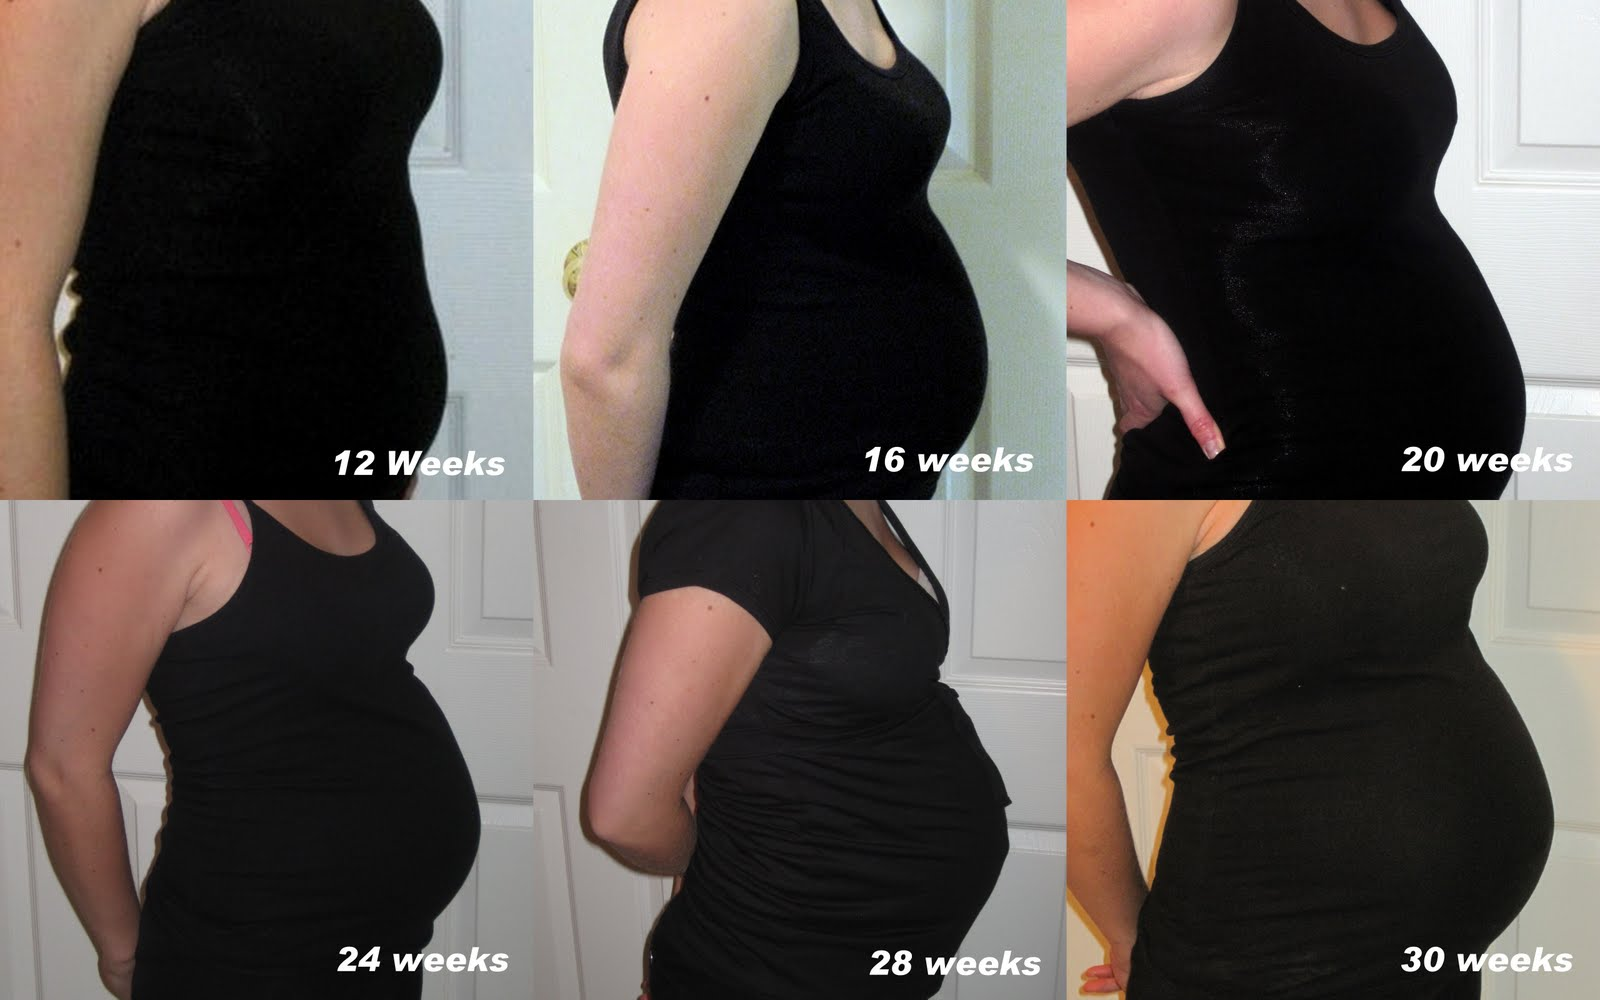 Pregnancy Belly Week By Week Chart From any weeks prior to 12Pregnancy Belly Week By Week Chart